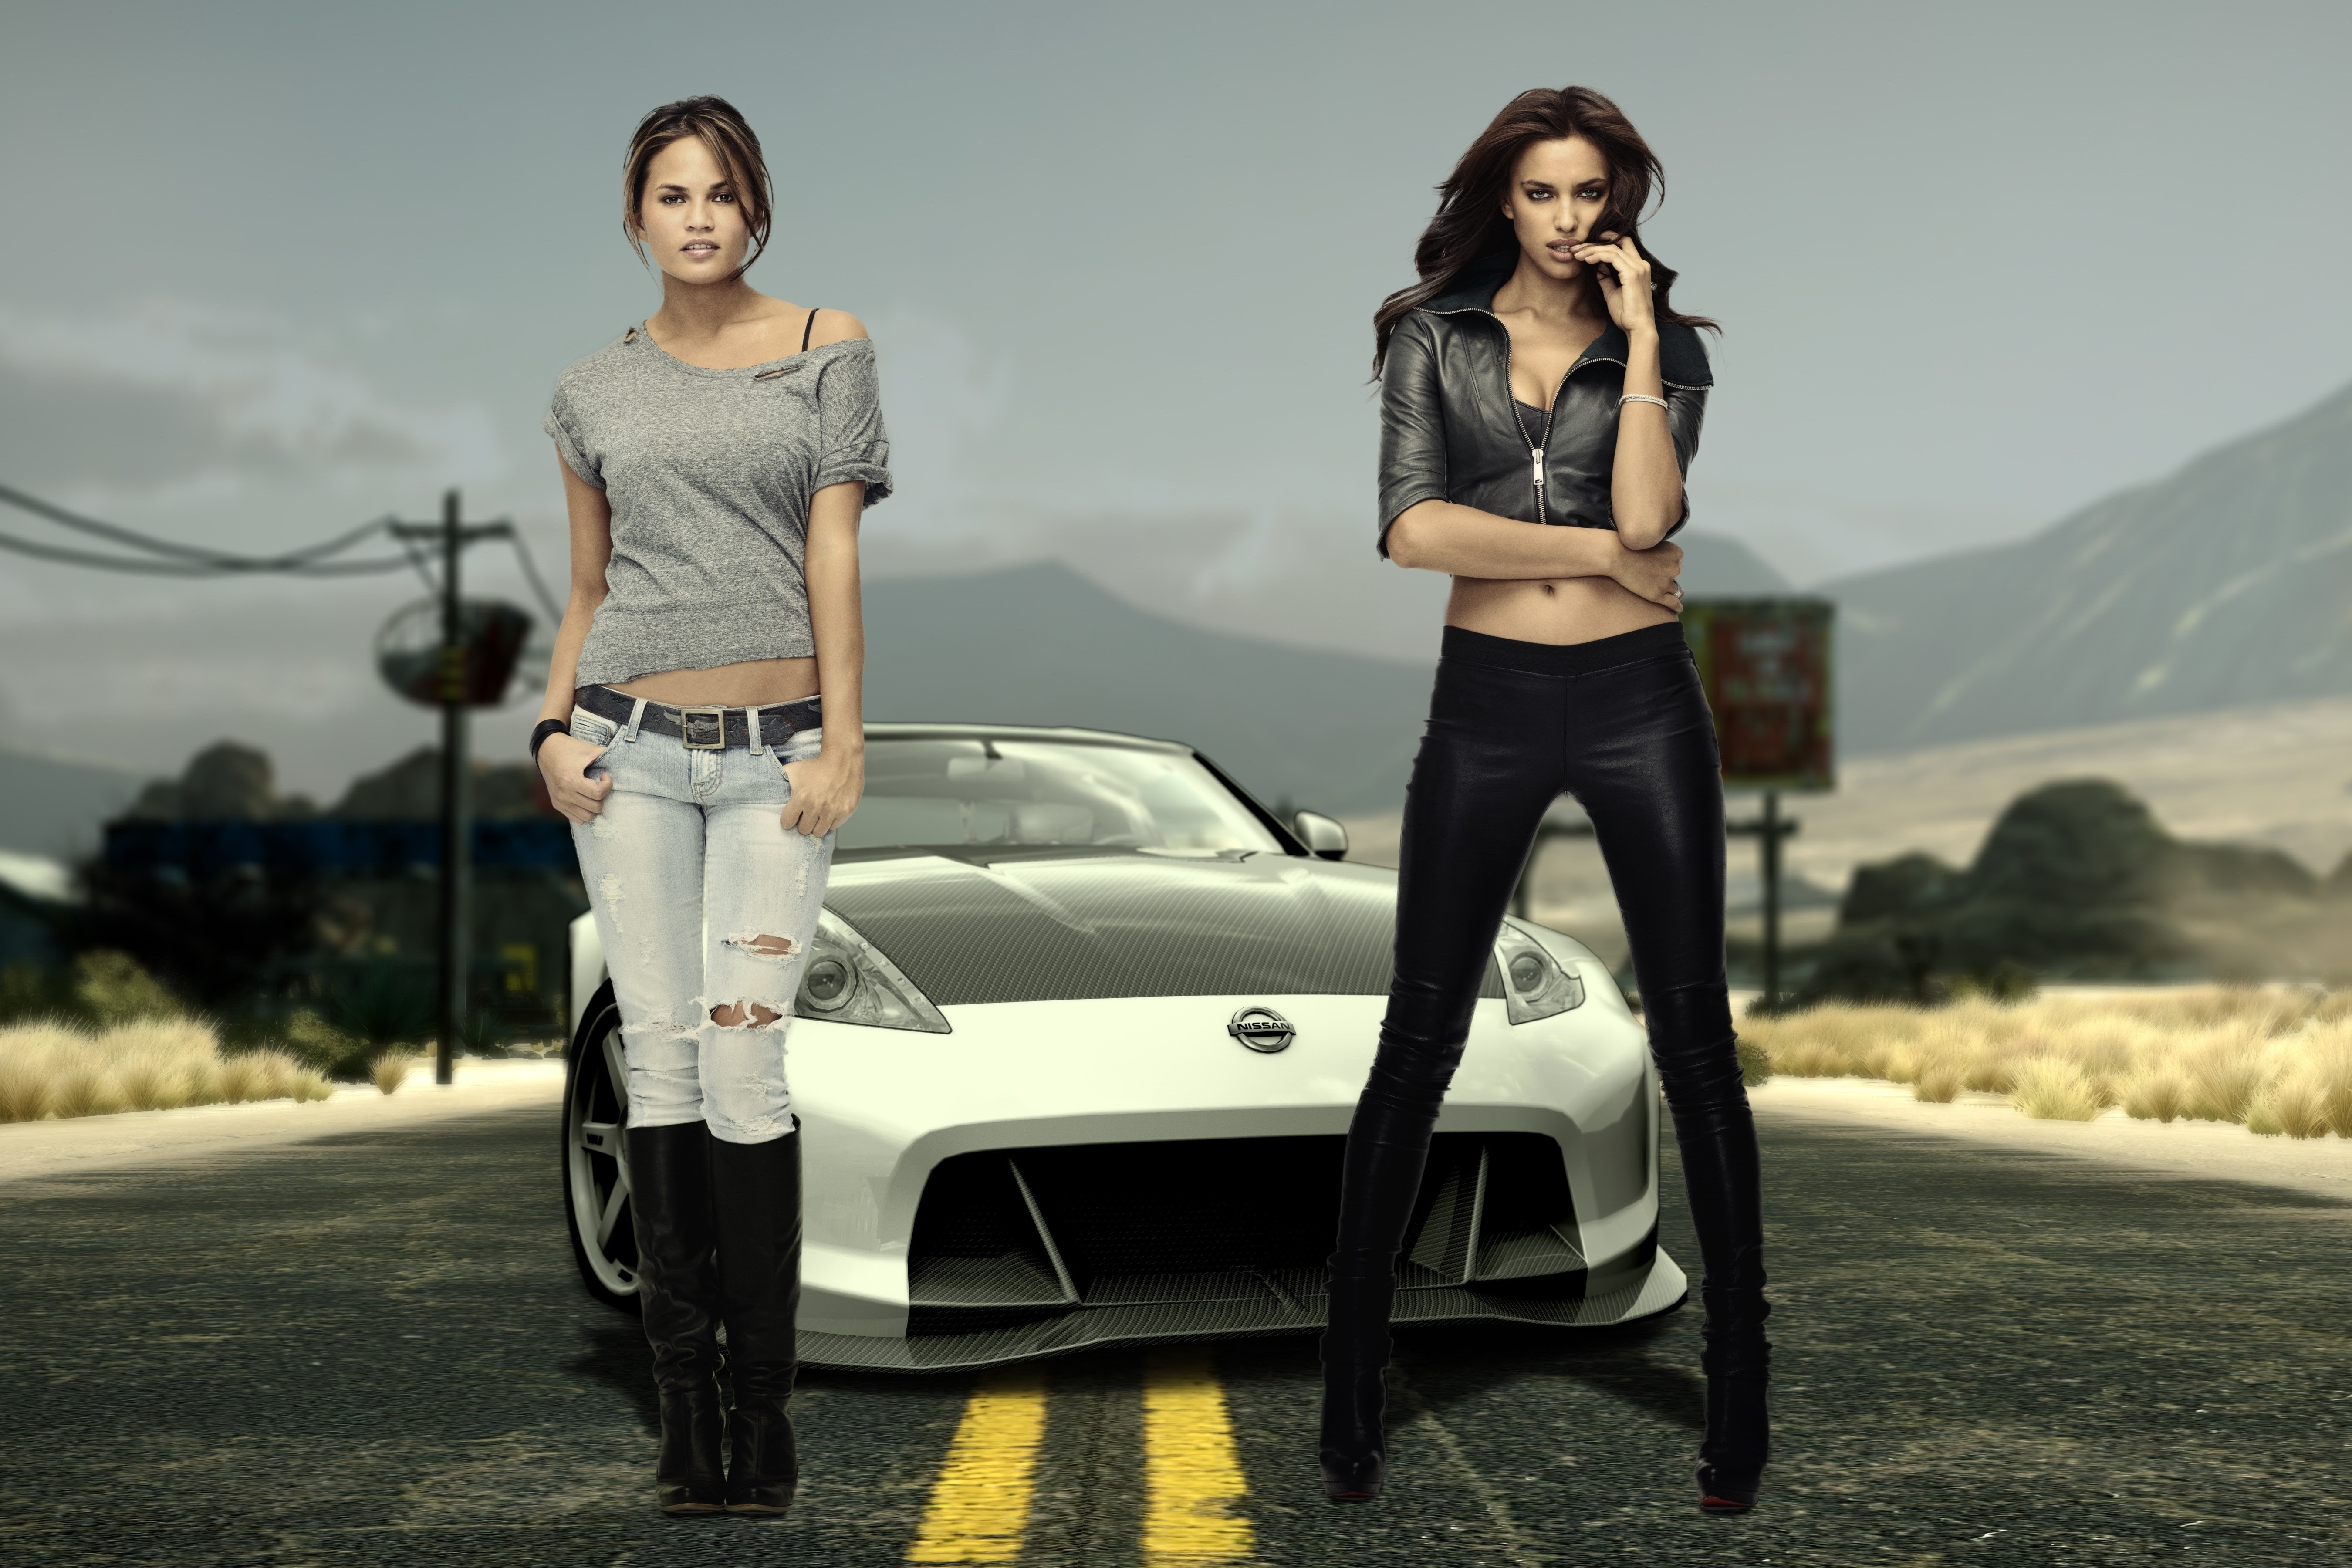 Women Cars Gas Station Girls With Cars 1920x1080 Wallpaper